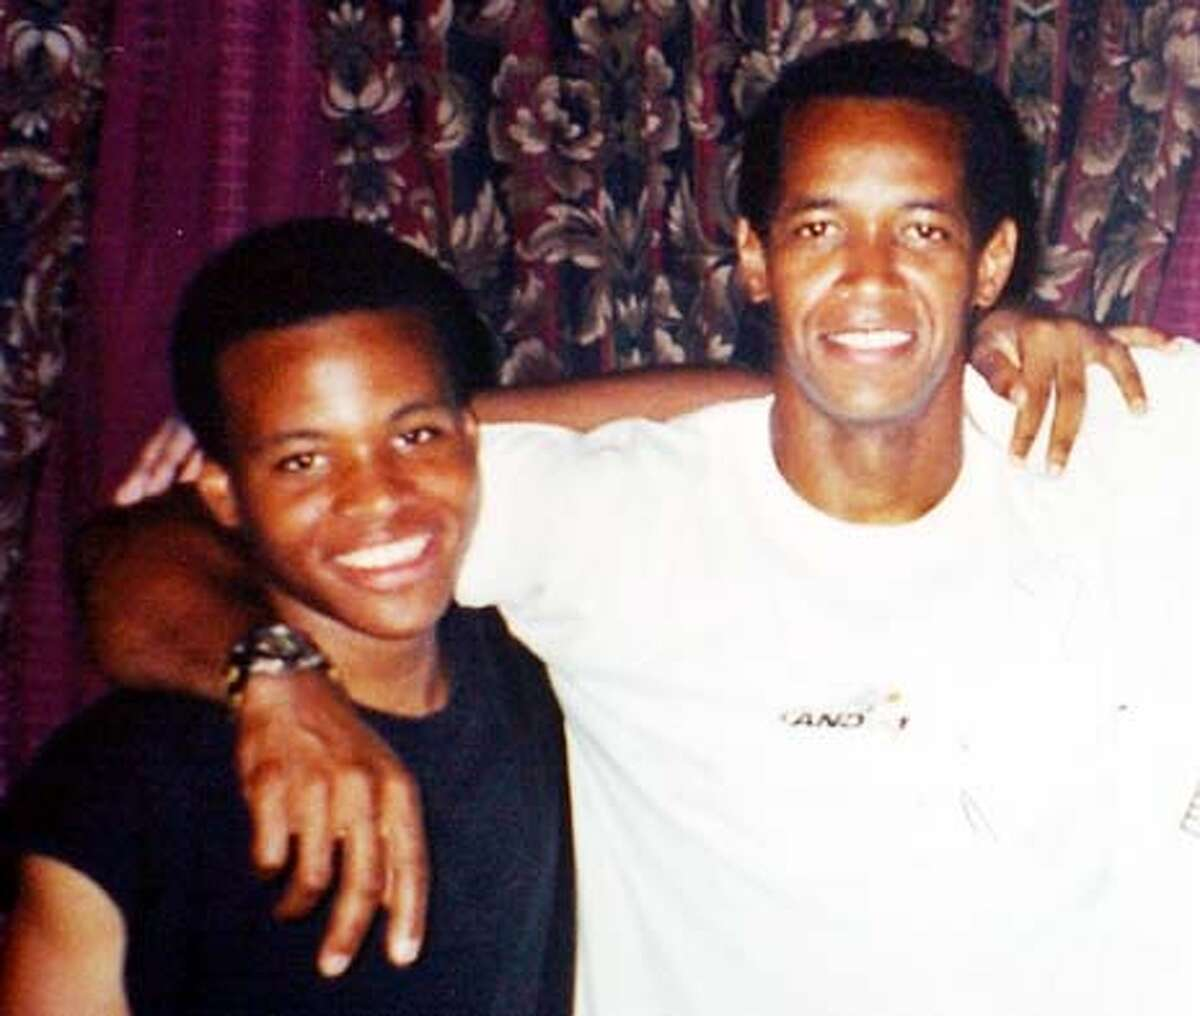 John Lee Malvo, 17, left, and John Allen Muhammad, are seen in this recent family photo in Louisiana, provided by Muhammad's former sister-in-law Sheron Norman, Thursday Oct. 24, 2002, in Baton Rouge, La. Muhammad, a 41-year-old Army veteran and the teenager described as his stepson were arrested at a roadside rest stop Thursday for questioning in the three-week wave of deadly sniper attacks that have terrorized the Washington, D.C., area. (AP Photo/Courtesy of Sheron Norman)